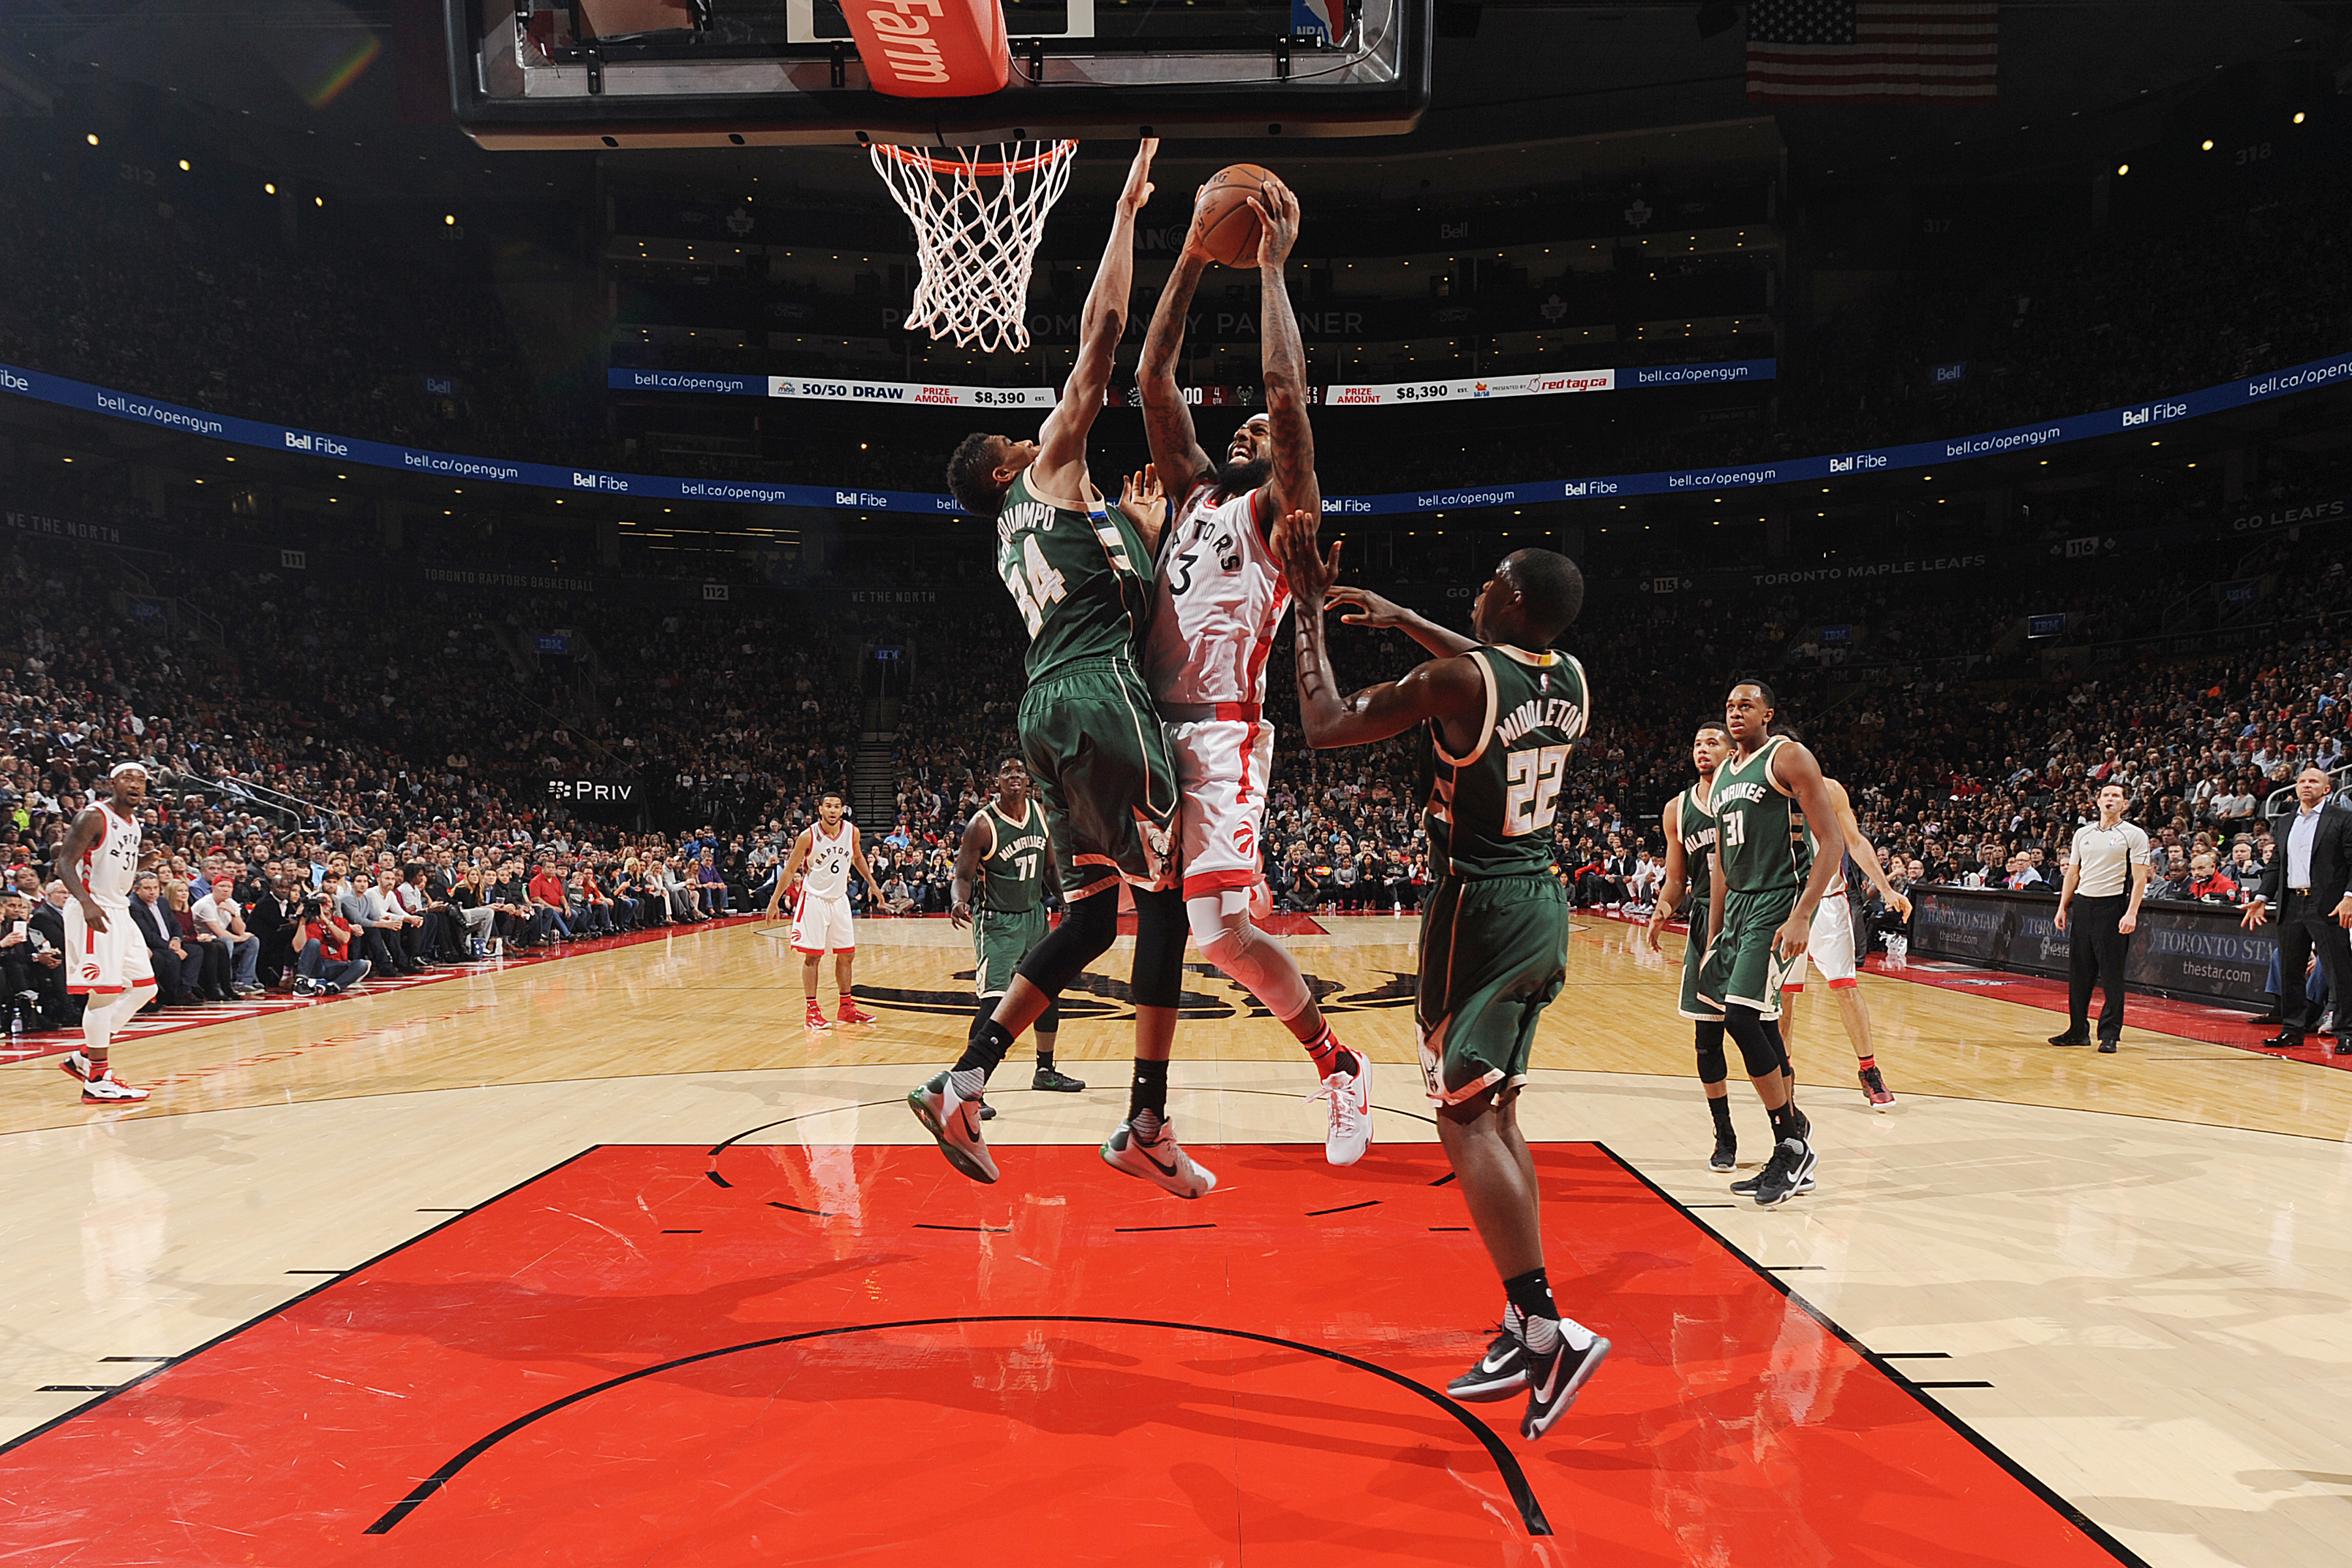 TORONTO, CANADA - DECEMBER 11:  James Johnson #3 of the Toronto Raptors shoots the ball against the Milwaukee Bucks on December 11, 2015 at the Air Canada Centre in Toronto, Ontario, Canada.  (Photo by Ron Turenne/NBAE via Getty Images)